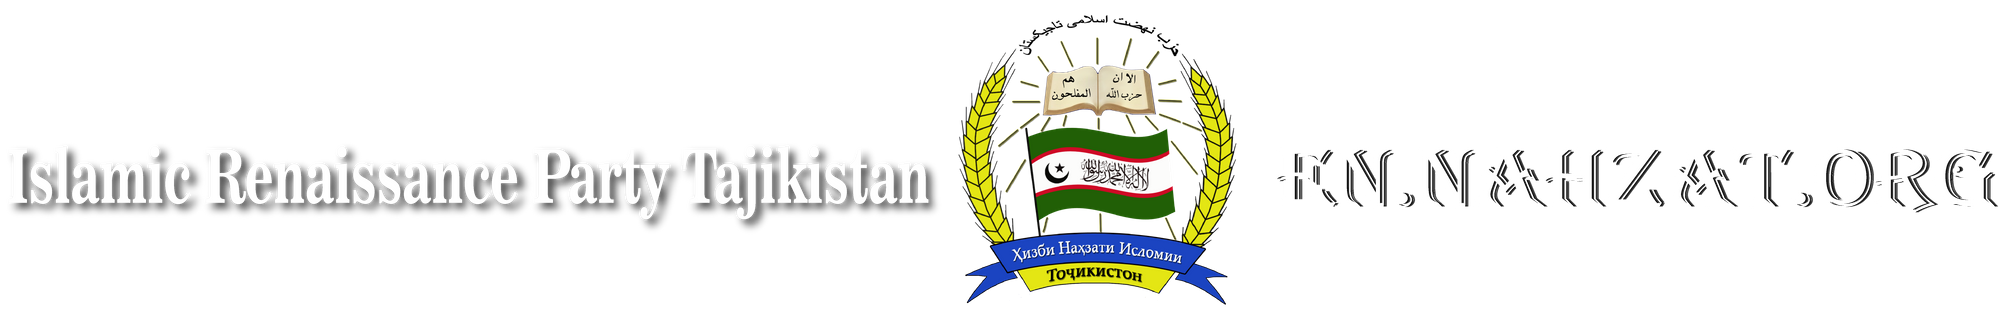 Islamic Renaissance Party Tajikistan